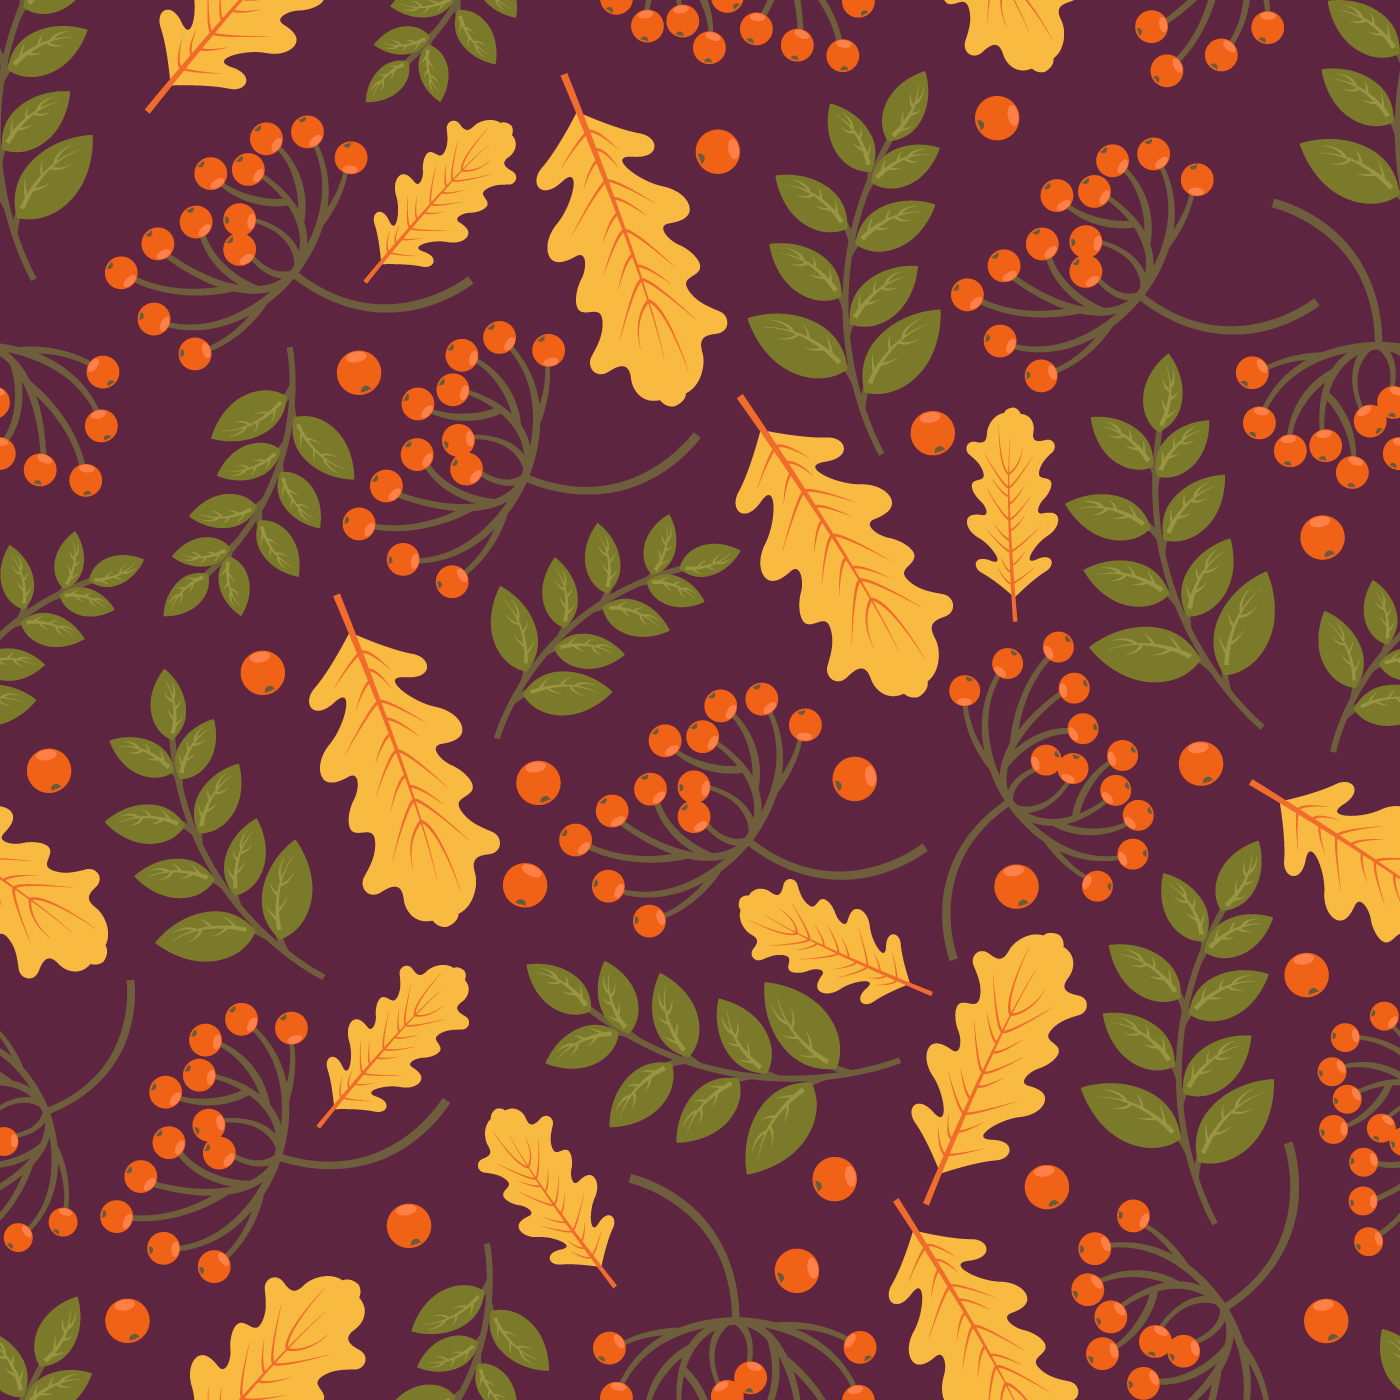 Falling Maple Leaves Wallpaper Fall Pattern Download Free Vector Art Stock Graphics